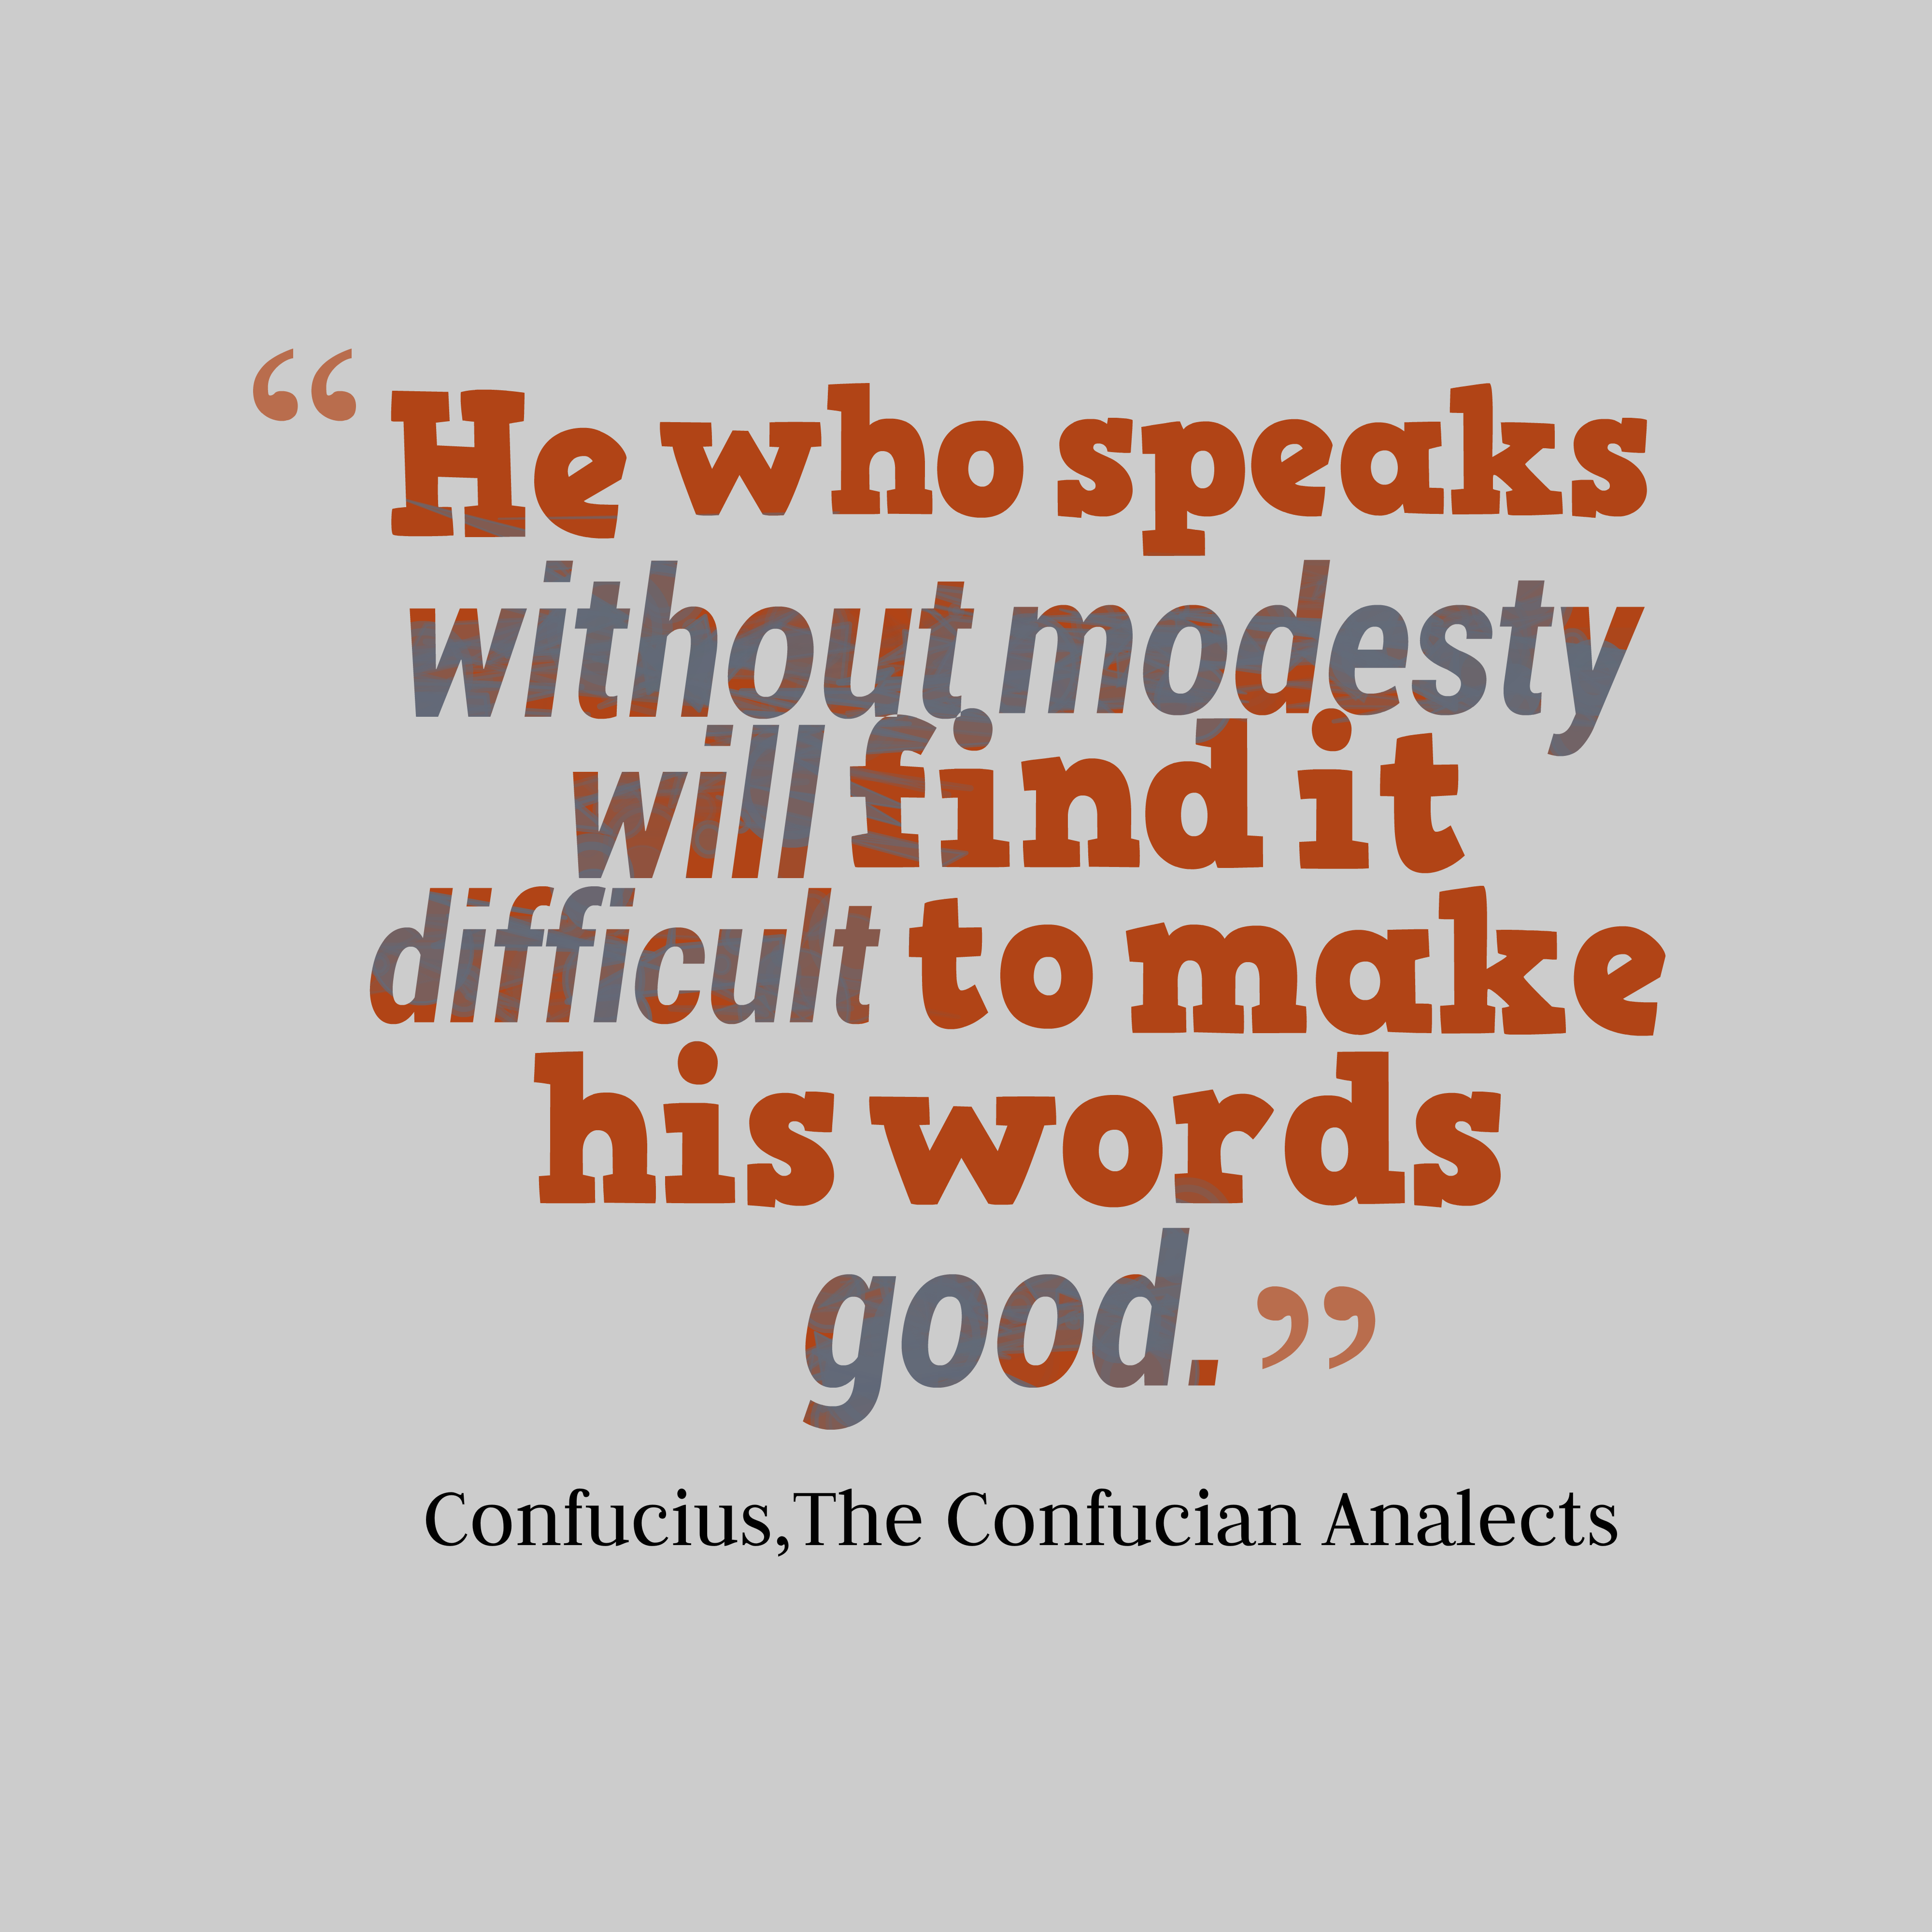 a personal reaction to the analects of confucius The analects also known as the analects of confucius, is a collection of sayings  and ideas  his personal interpretation of the lunyu was guided by his belief  that daoism and confucianism complemented each other, so that by studying  both.